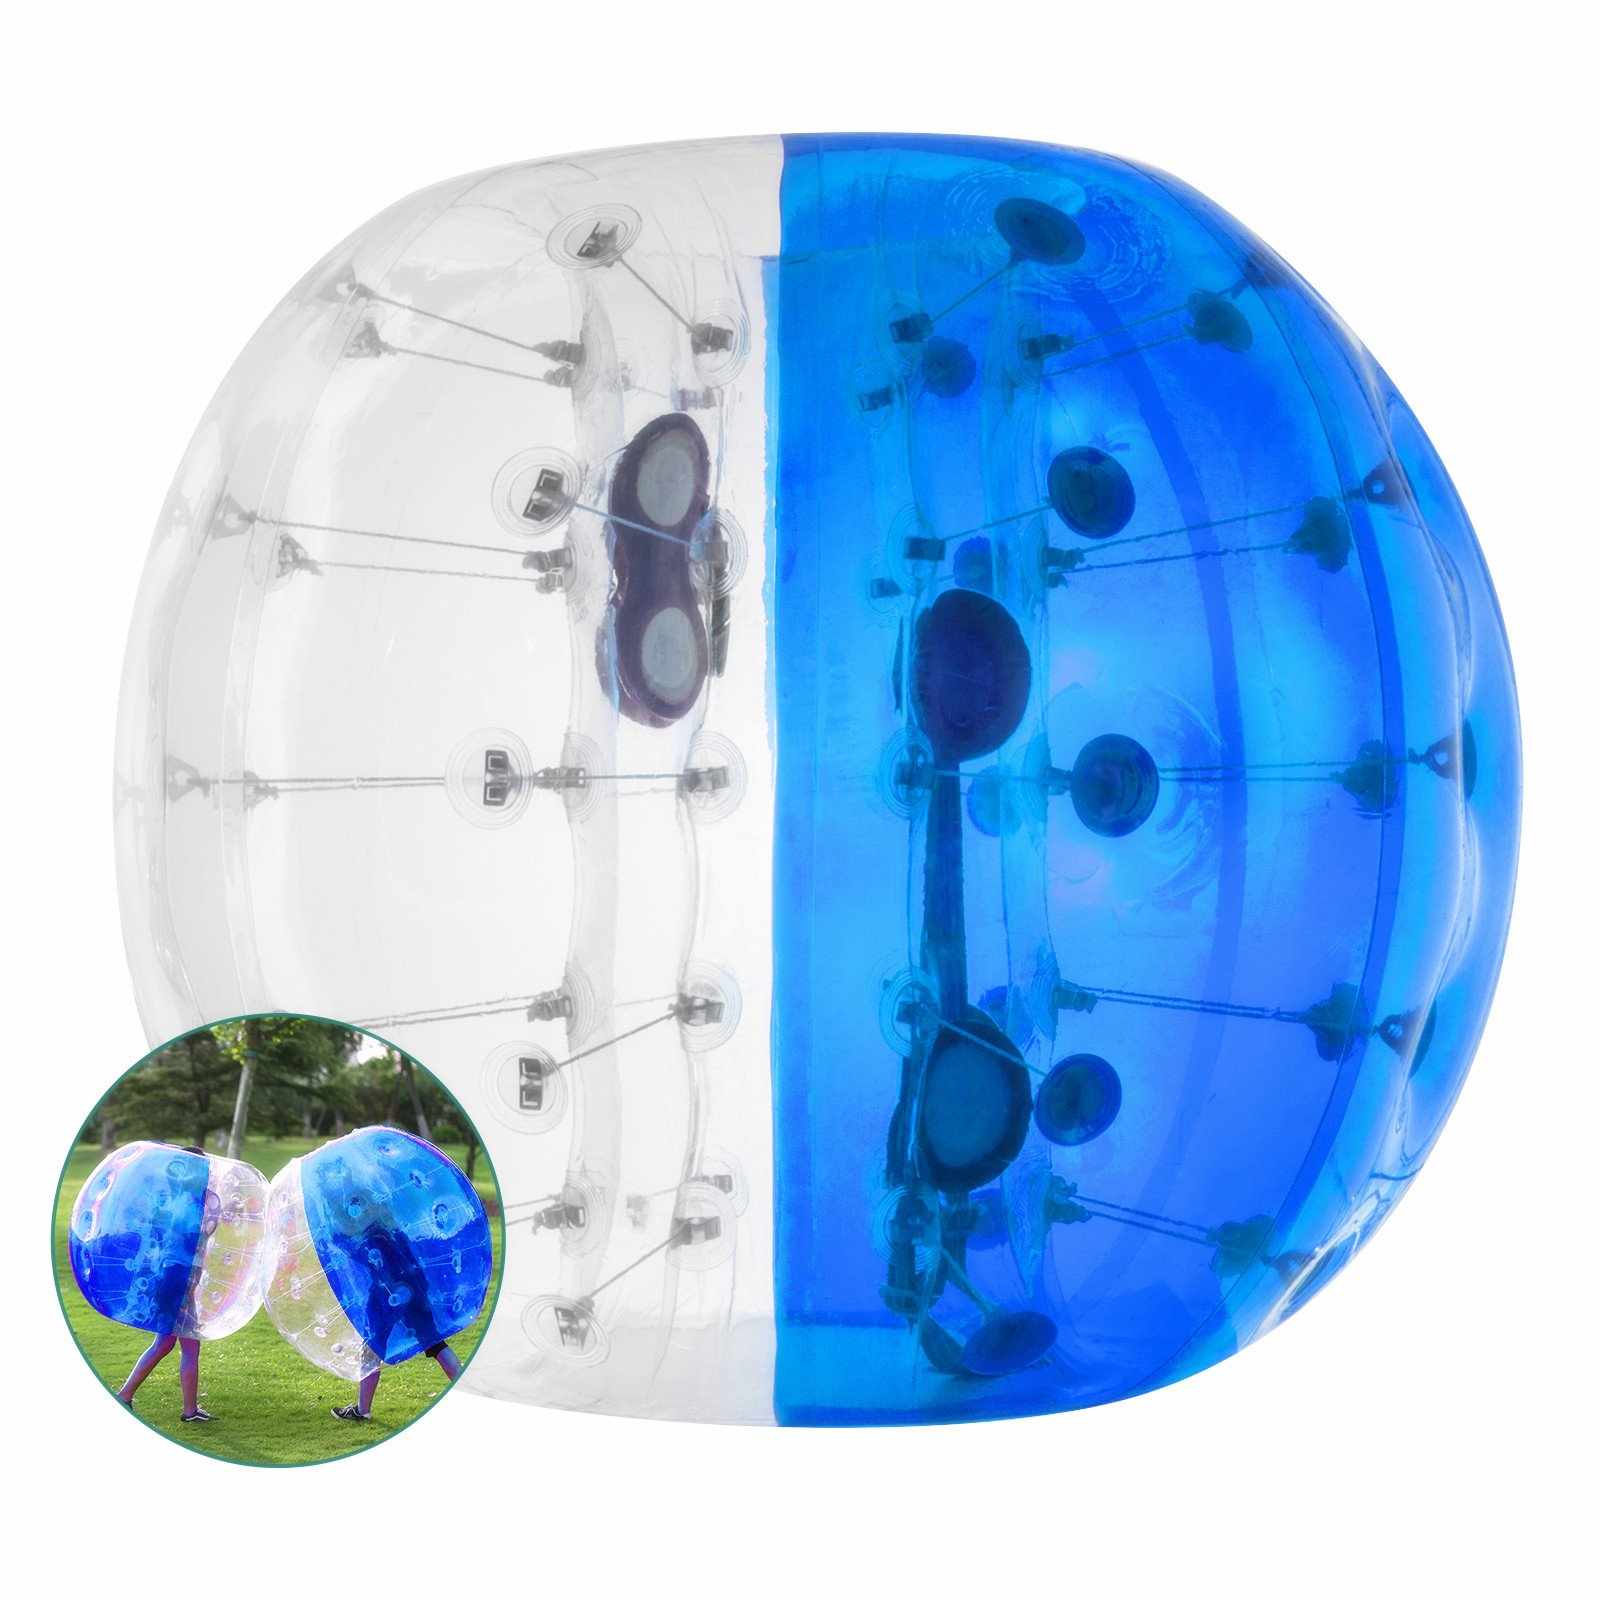 BestEquip Inflatable Bumper Ball Bubble Soccer 4FT/ 5FT for Adult Balls Human and Child Outdoor Inflatable Bumper Ball (Blue and Transparent, 5ft) by BestEquip (Image #1)